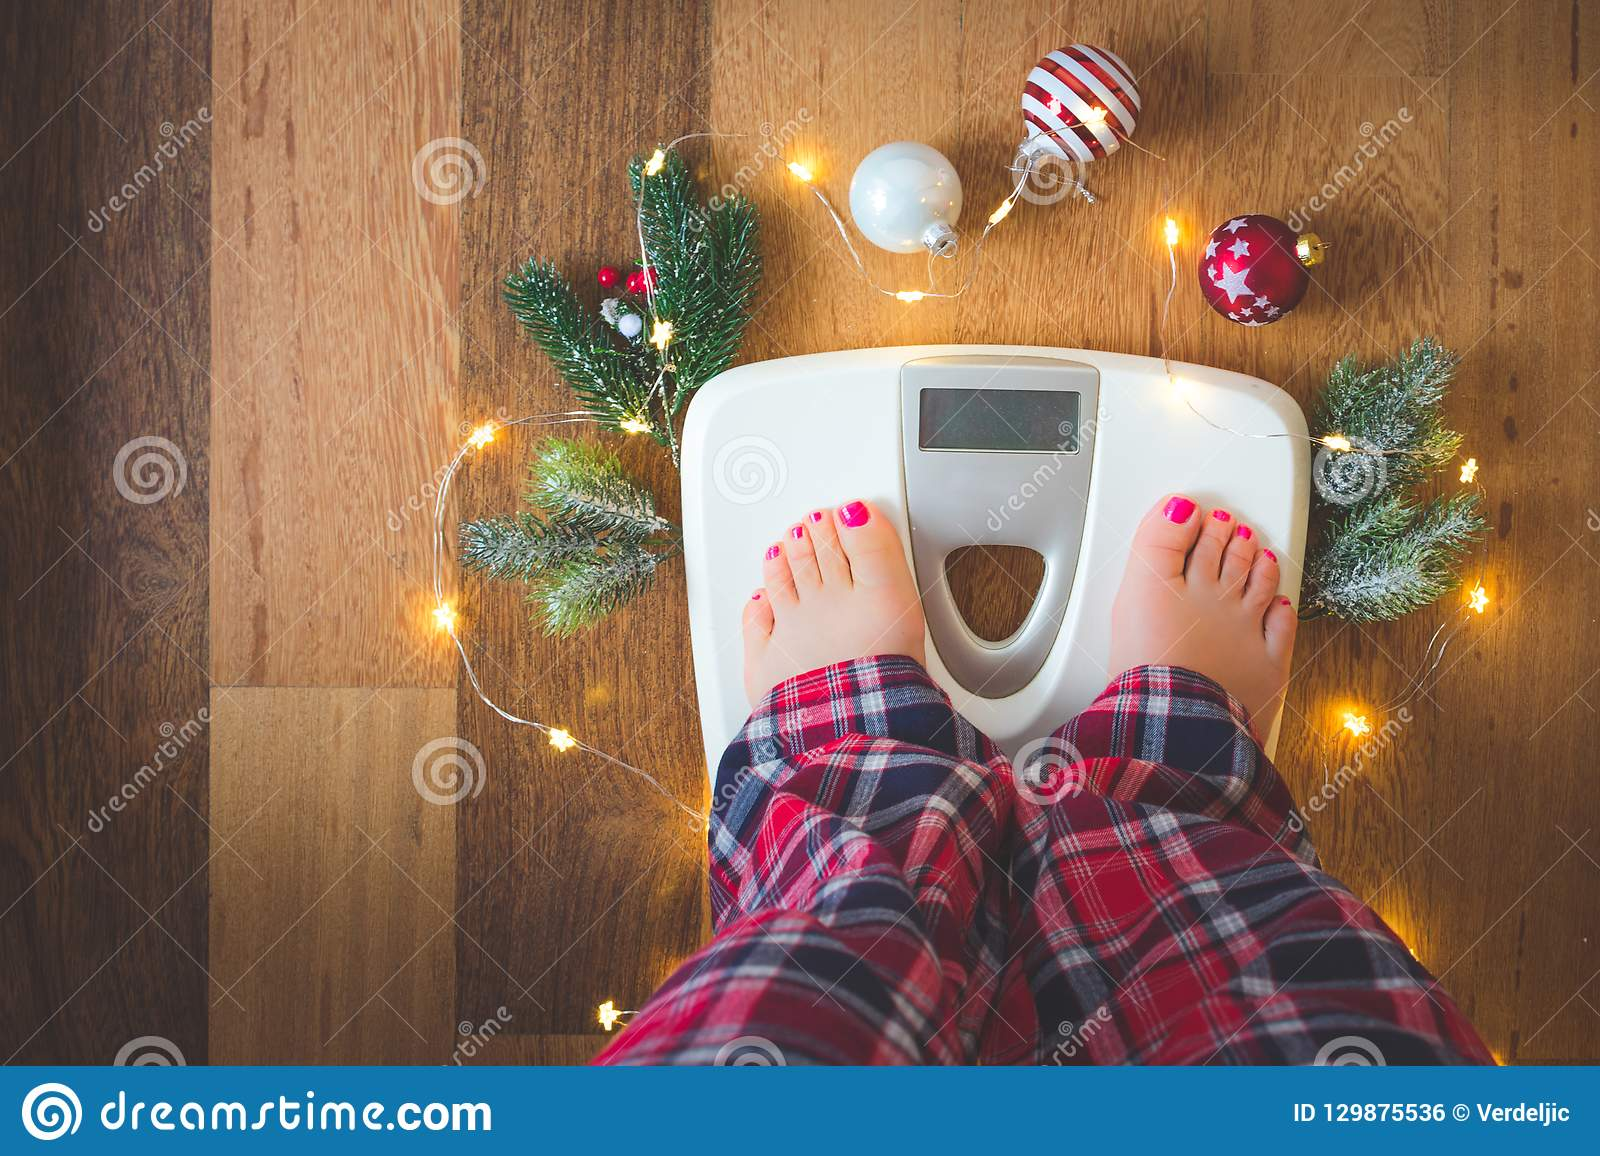 Top view of female legs in pajamas on a white weight scale with